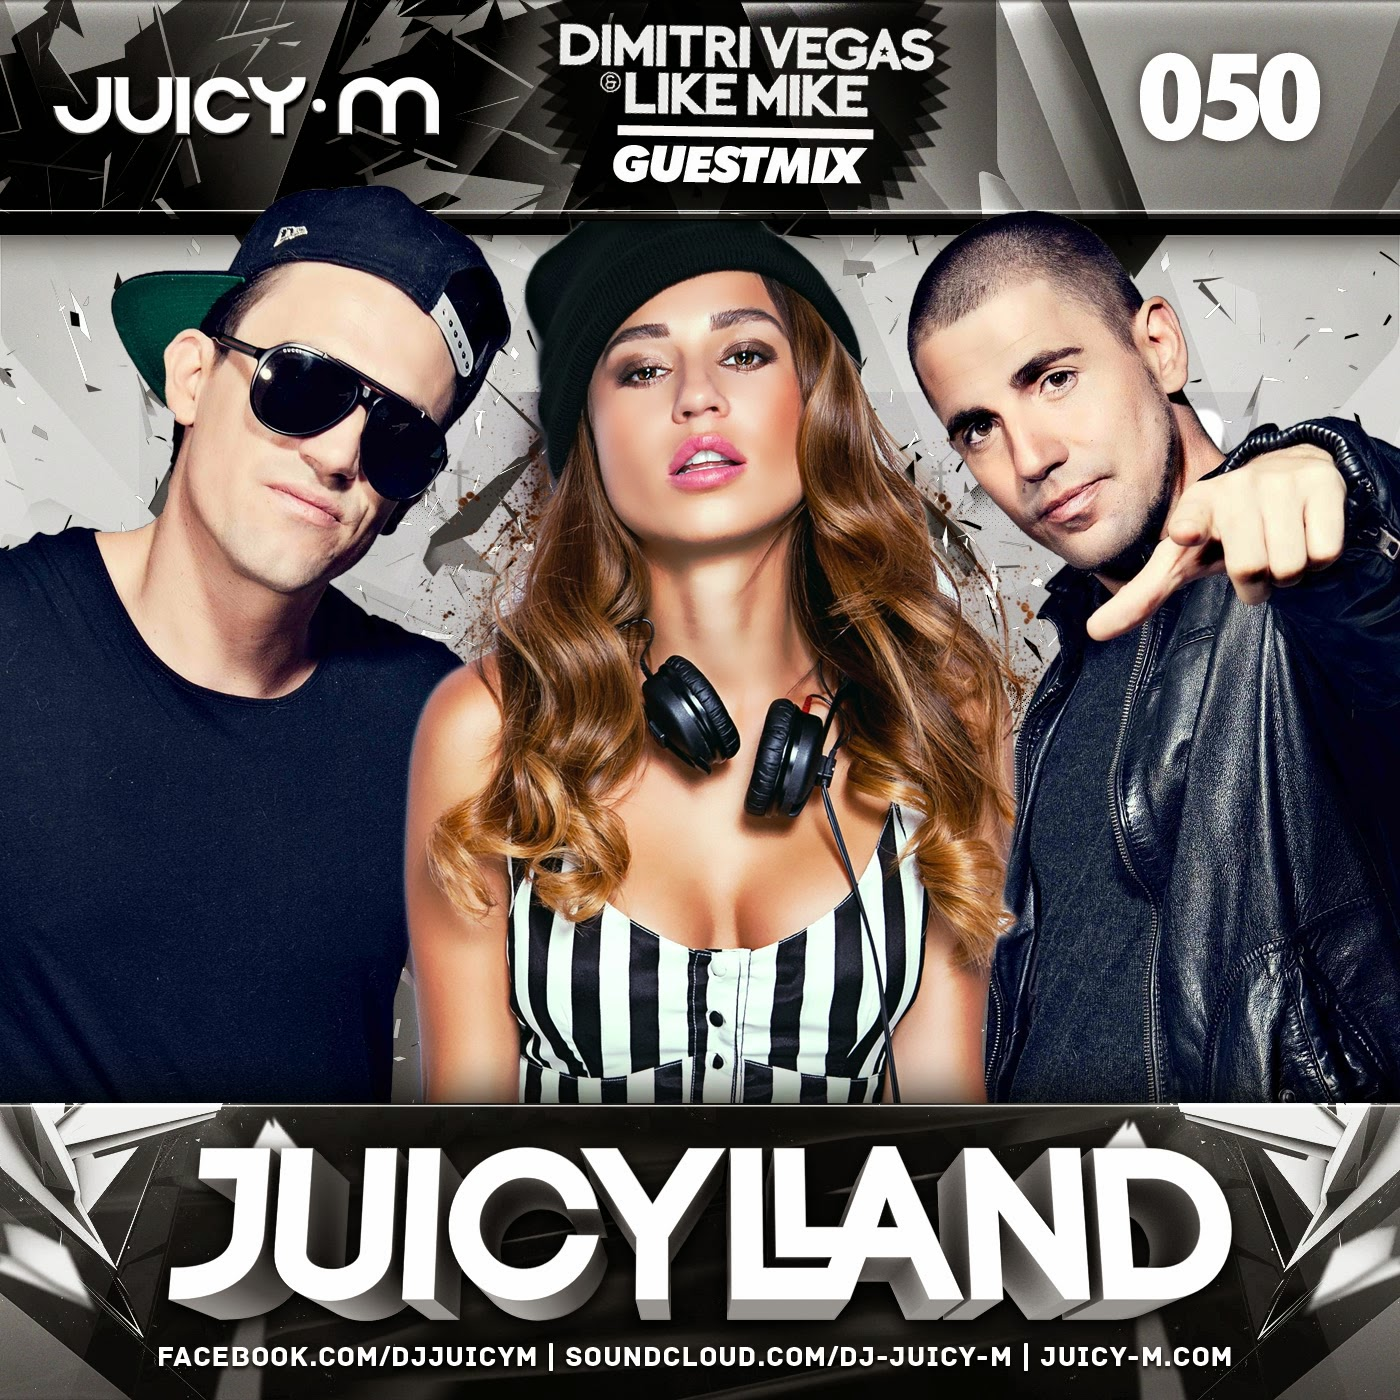 DJ Juicy M - JuicyLand #050 (Dimitri Vegas & Like Mike Guest Mix)